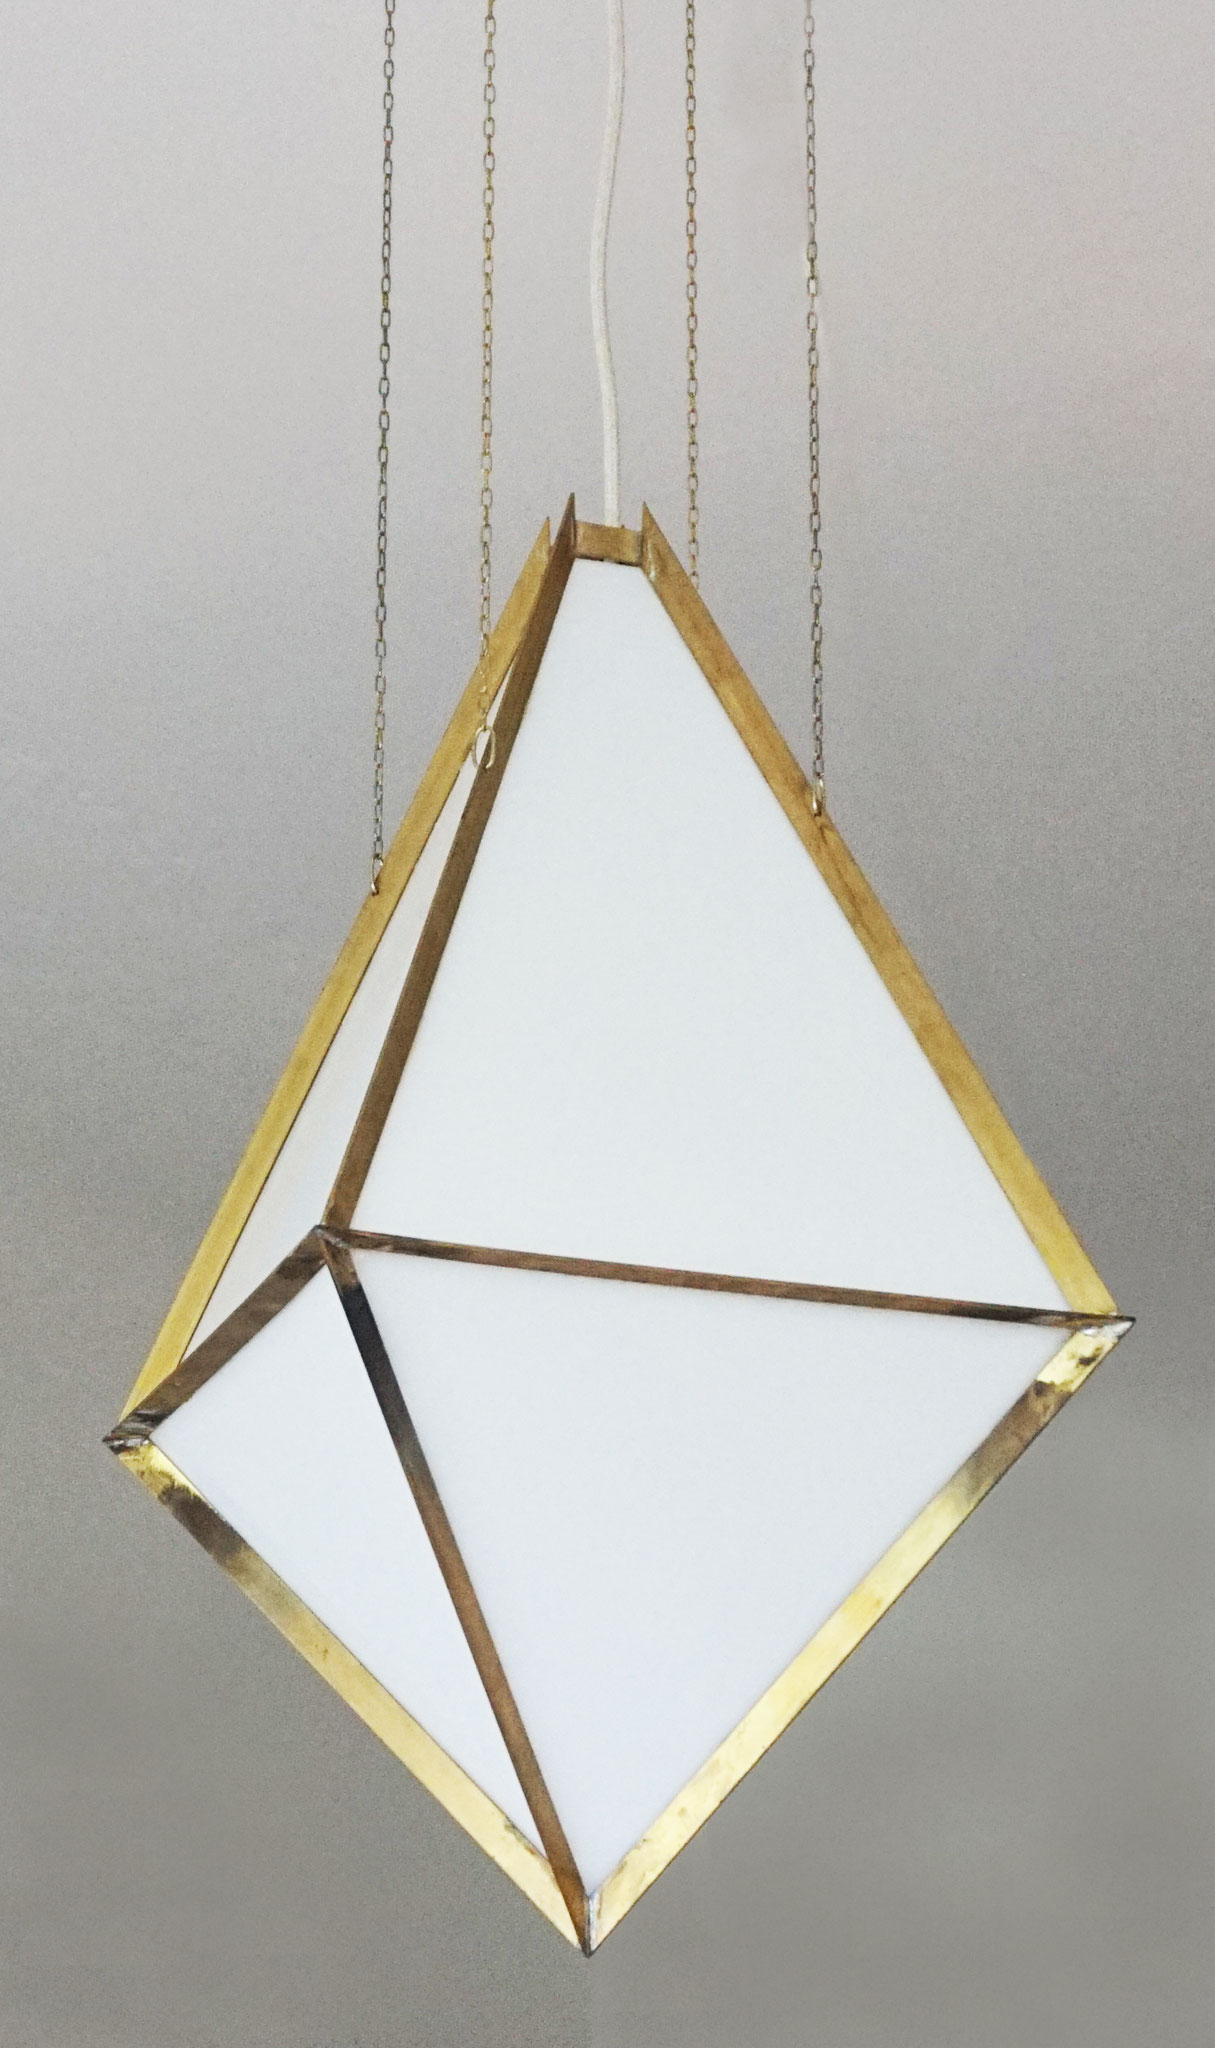 H.No.7 | 32 x 32 x 62 cm | brass, acrylic glass